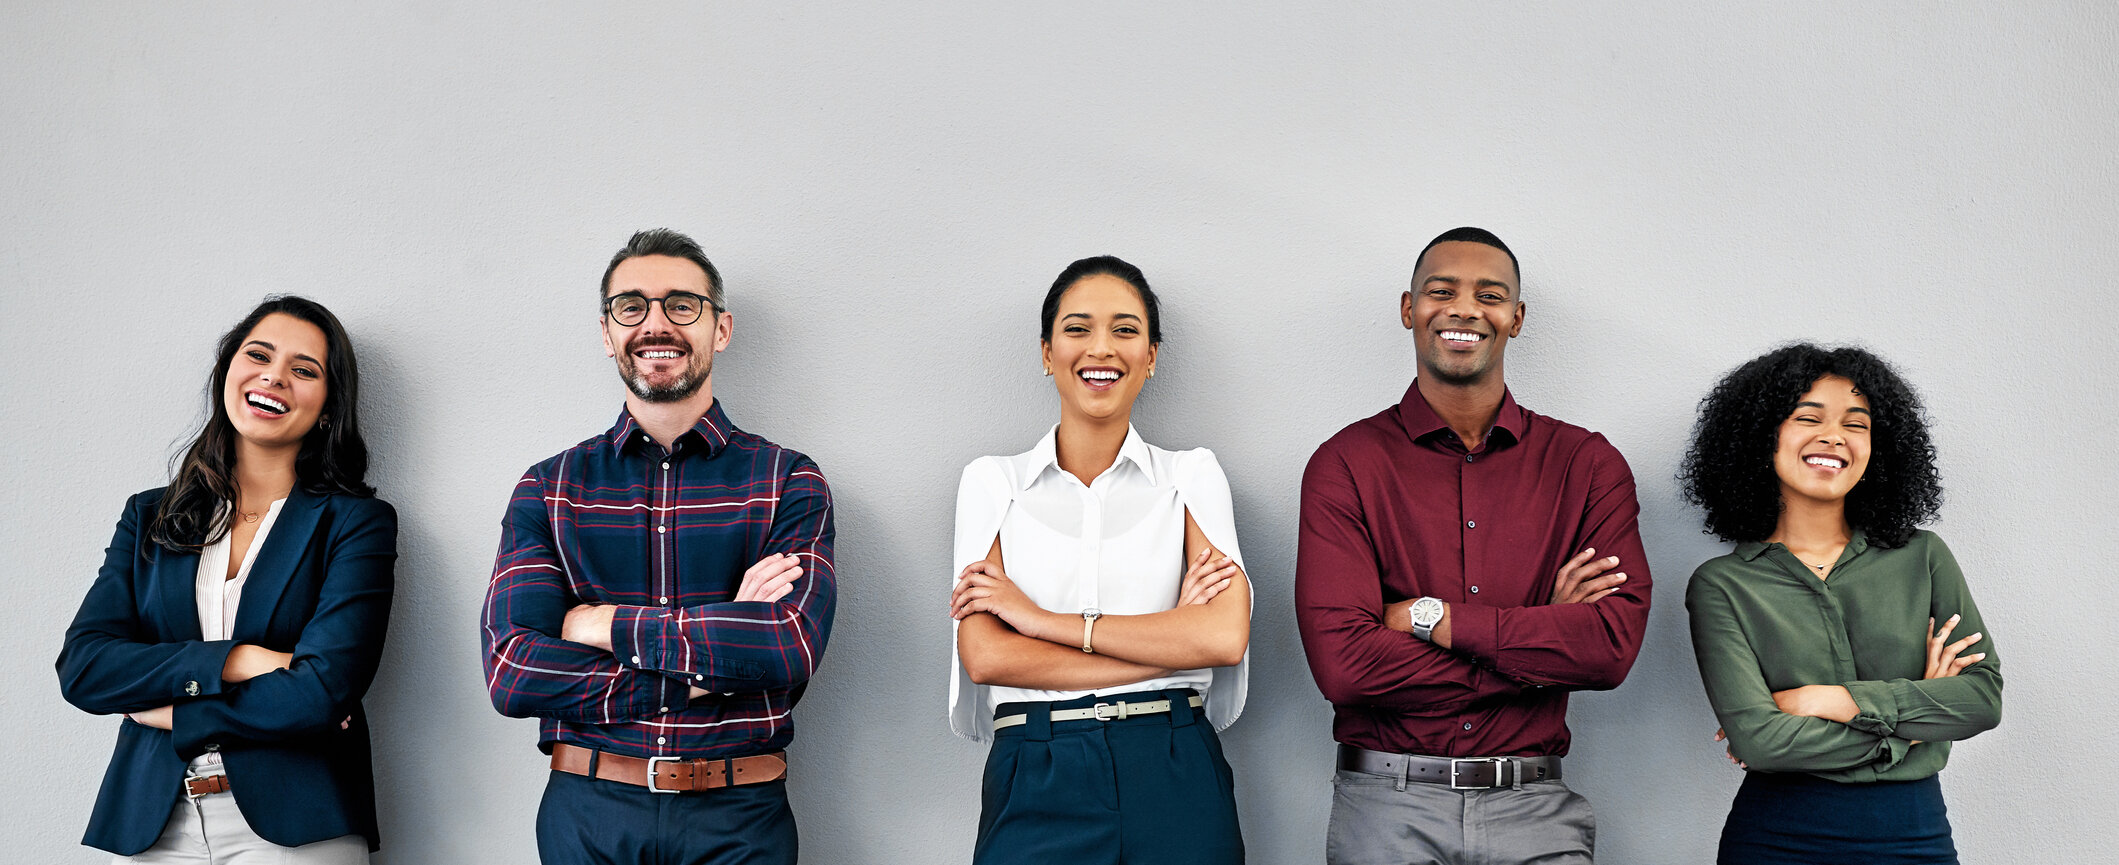 people leaning on wall smiling